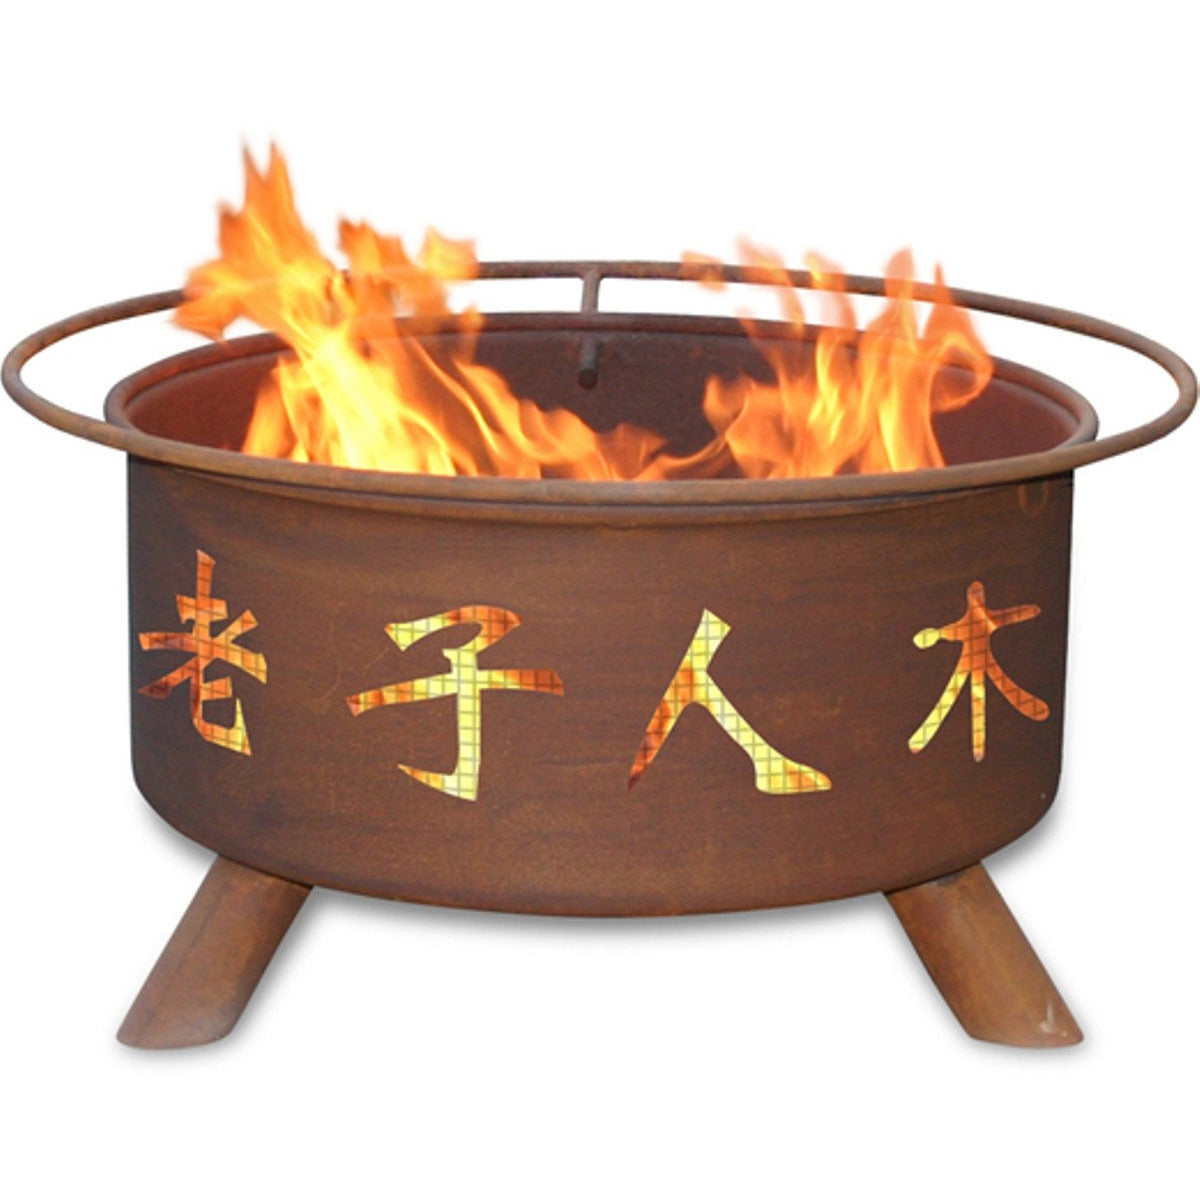 Chinese Symbols Design Steel Wood and Charcoal Fire Pit for Patio, Fireplace - Yardify.com